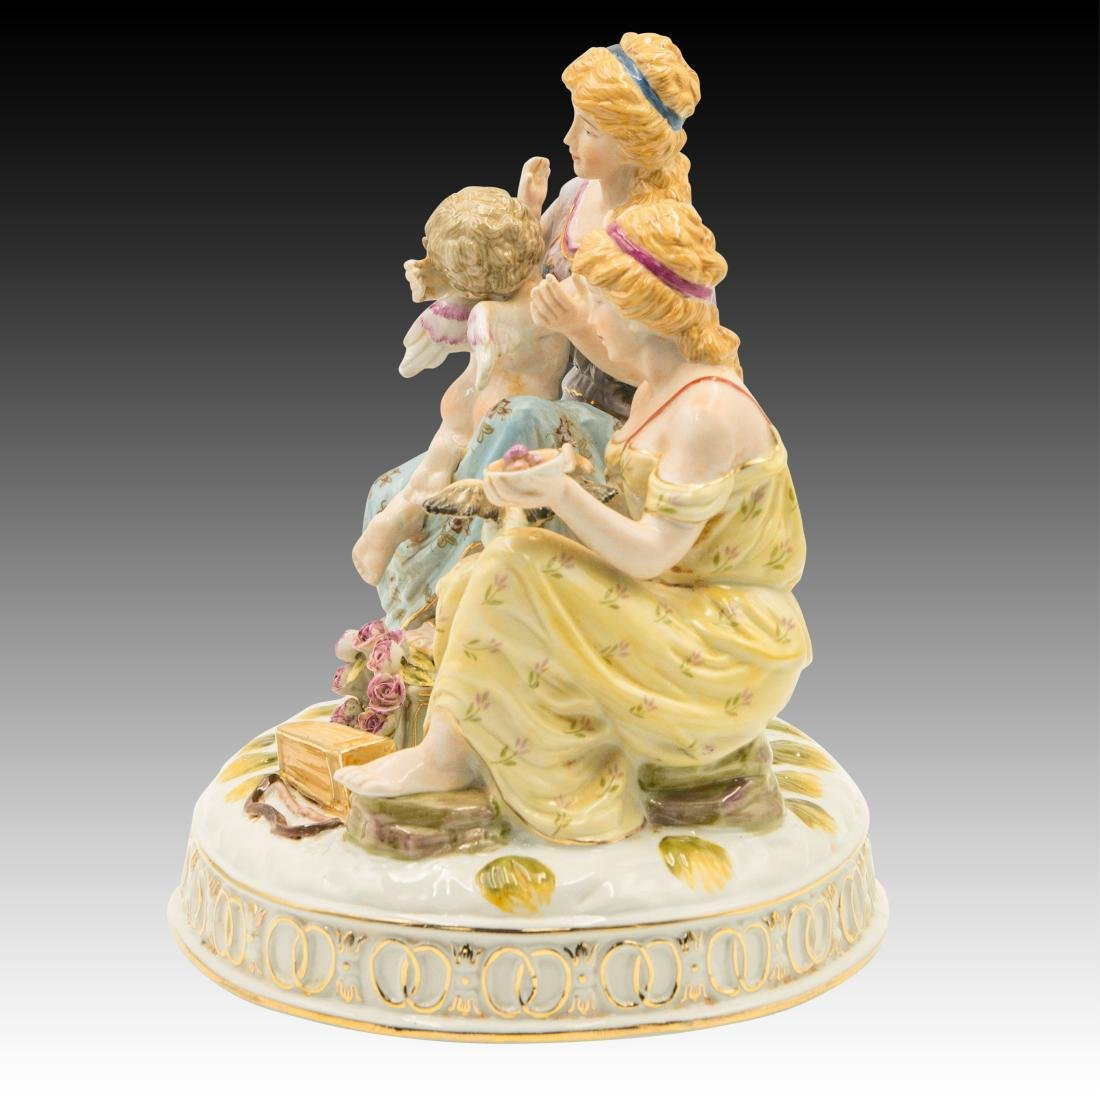 Two Women and a Cherub and Birds Figurine - 2